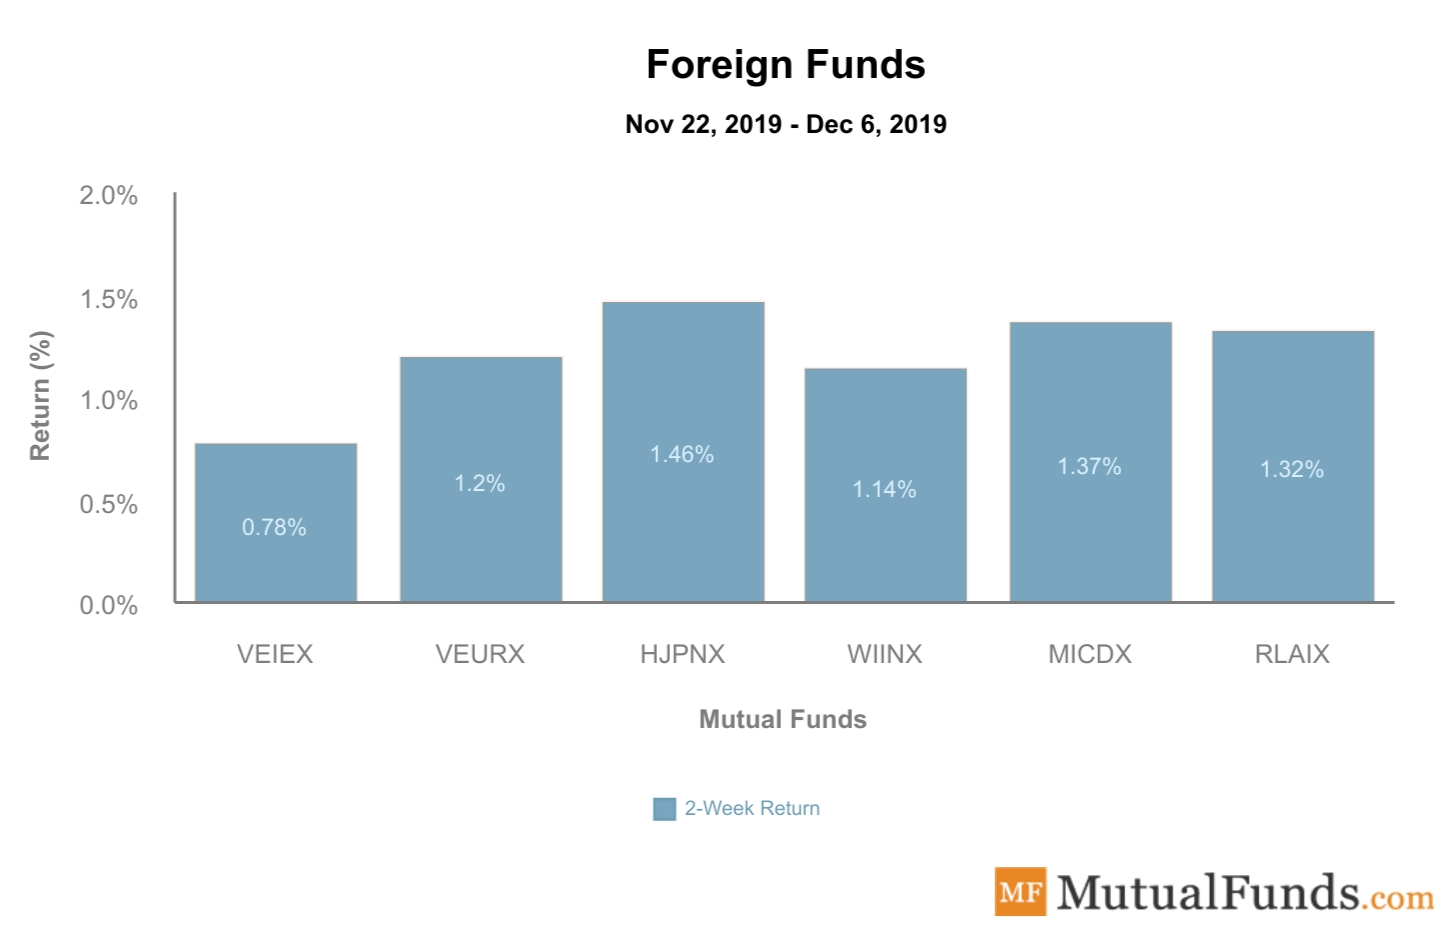 Foreign Funds Performance Dec 10, 2019